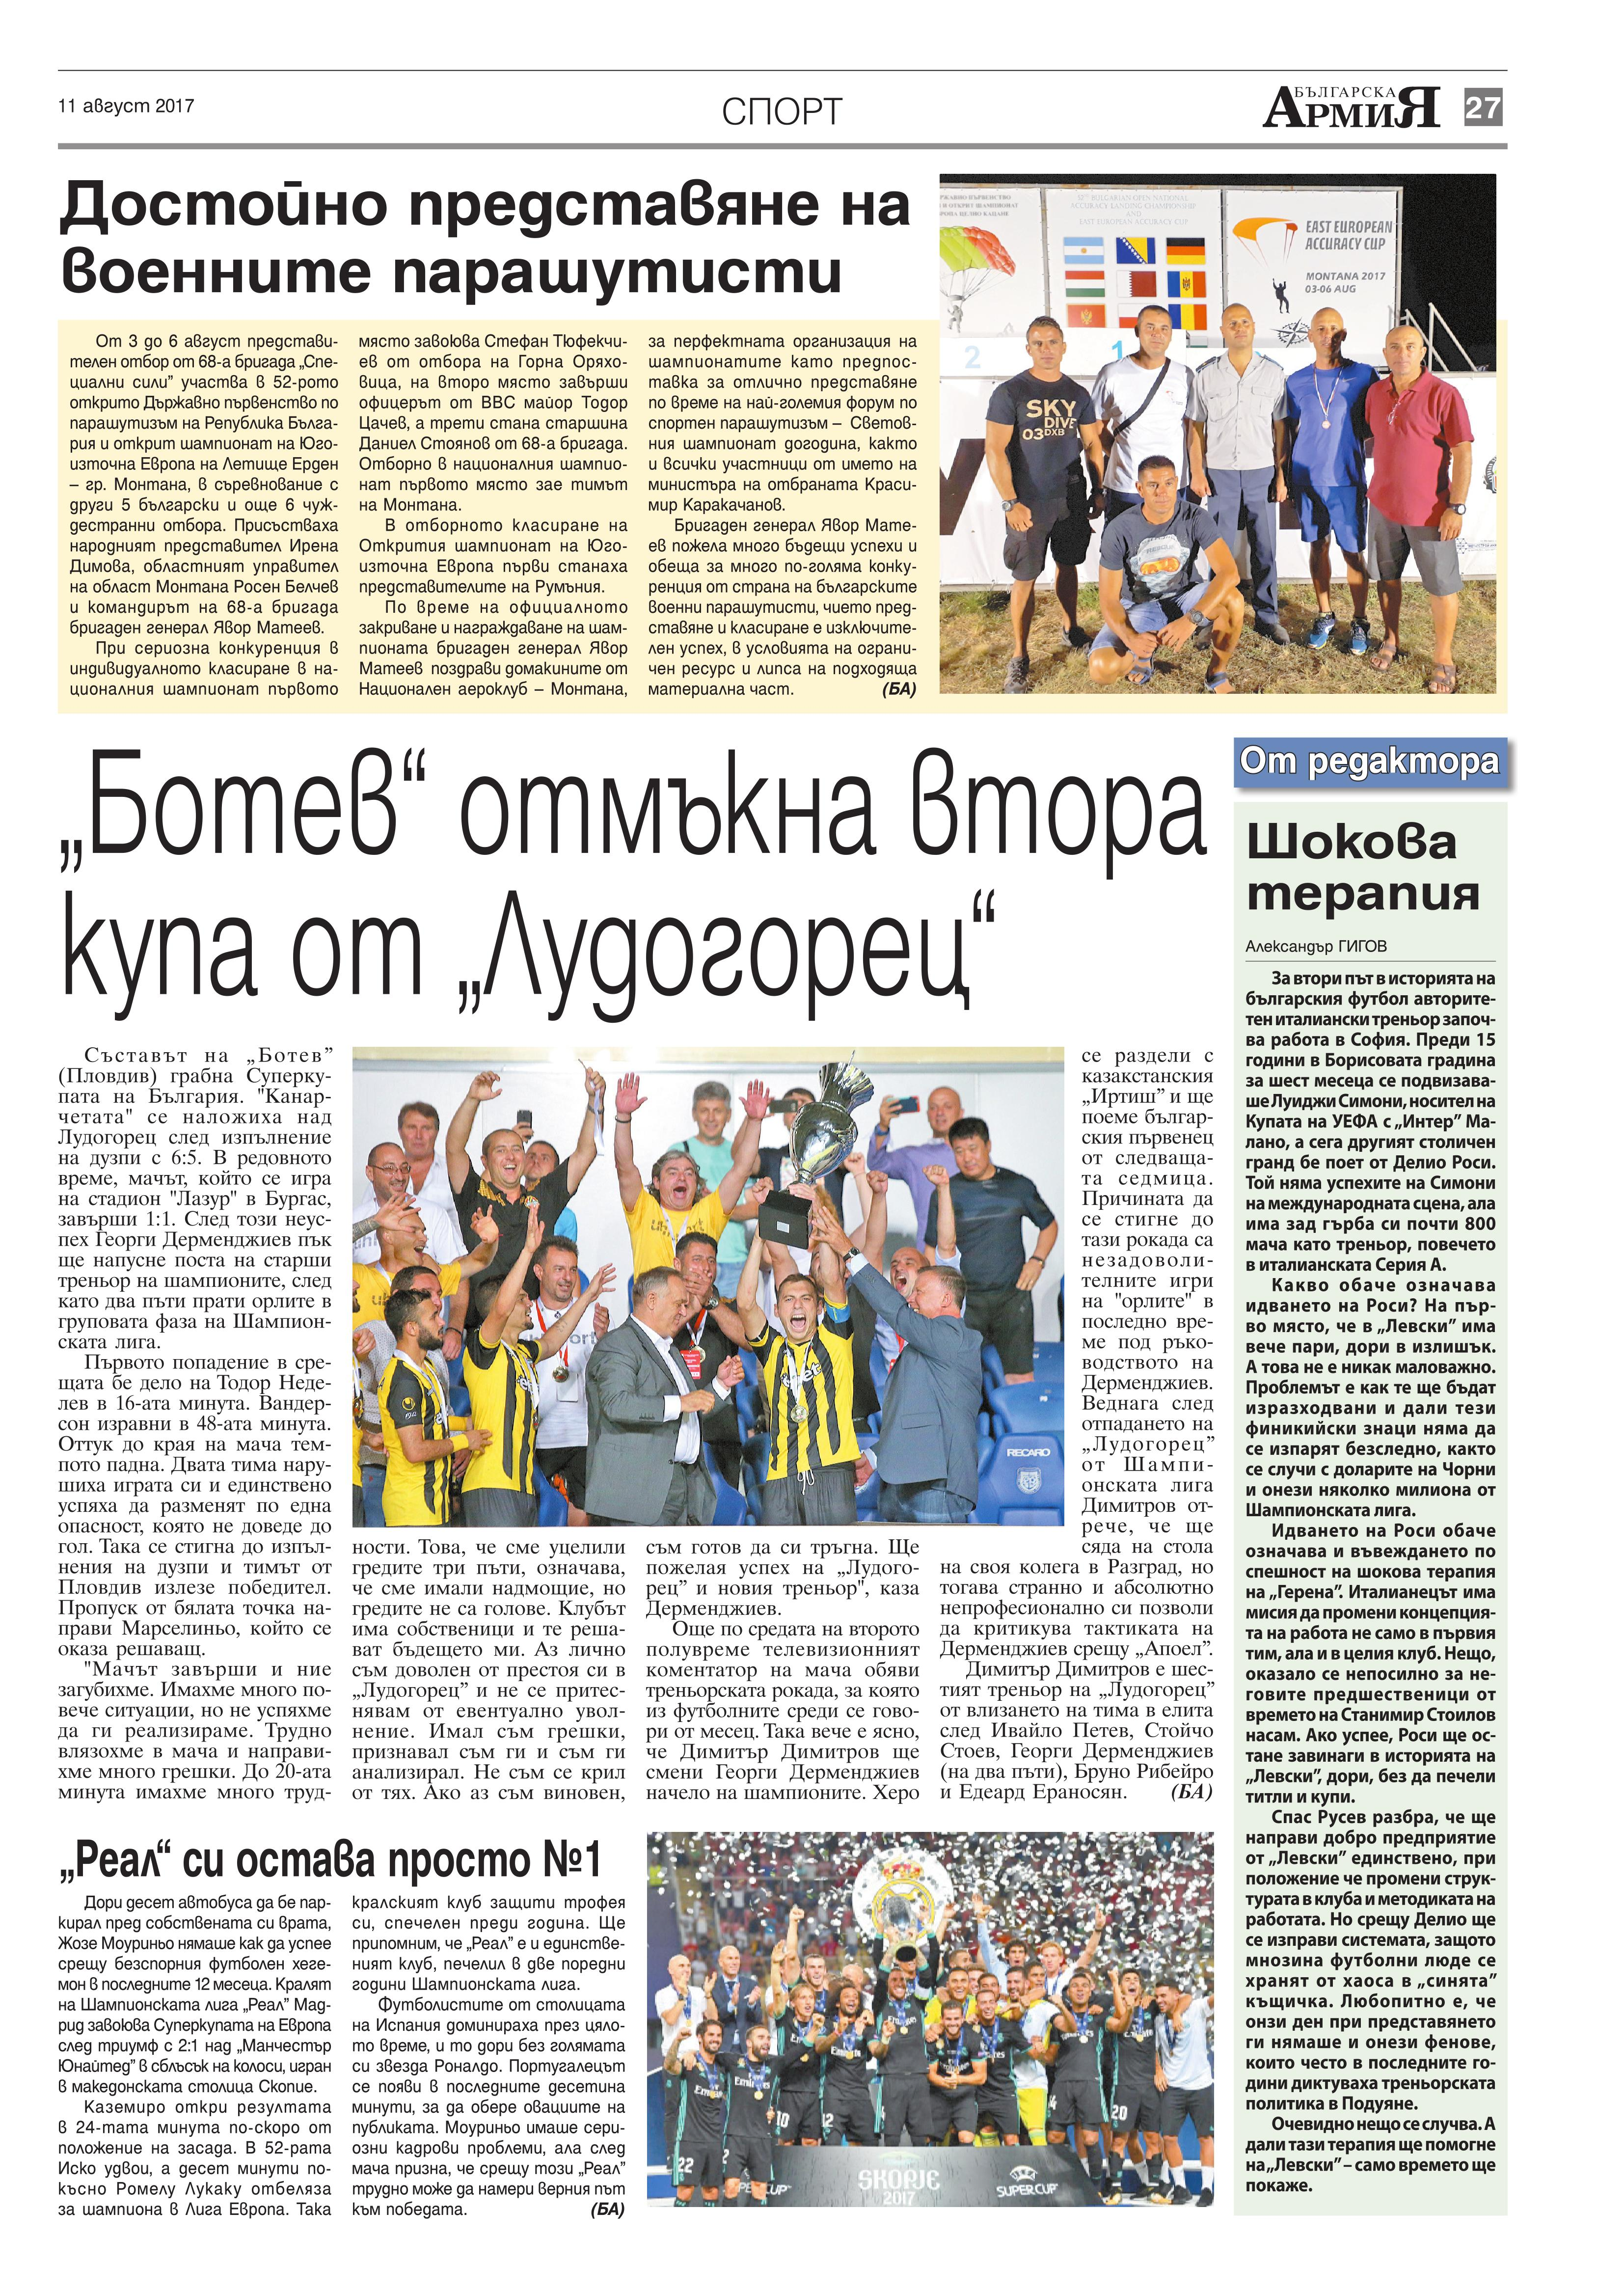 http://armymedia.bg/wp-content/uploads/2015/06/27.page1_-25.jpg